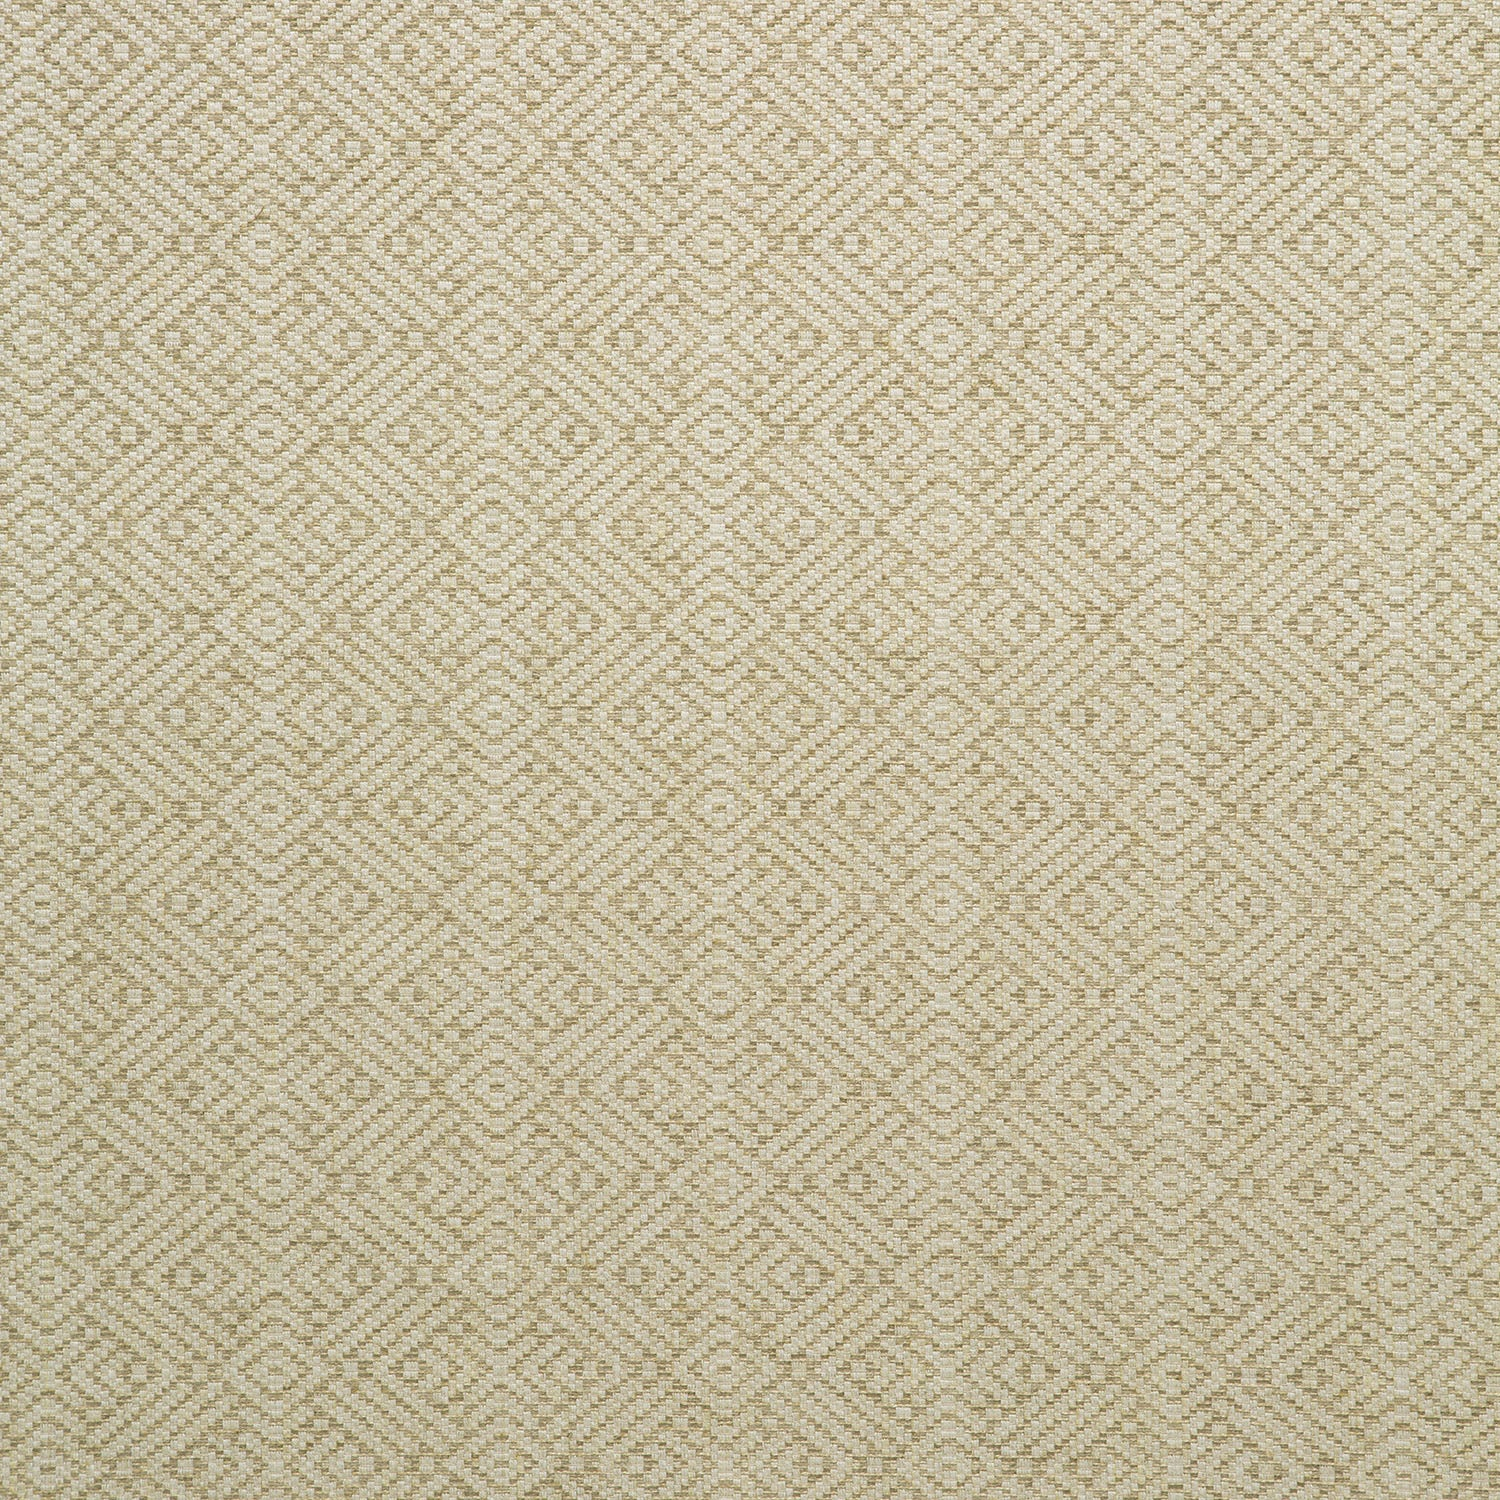 Fabric swatch of a neutral geometric weave fabric for curtains and upholstery